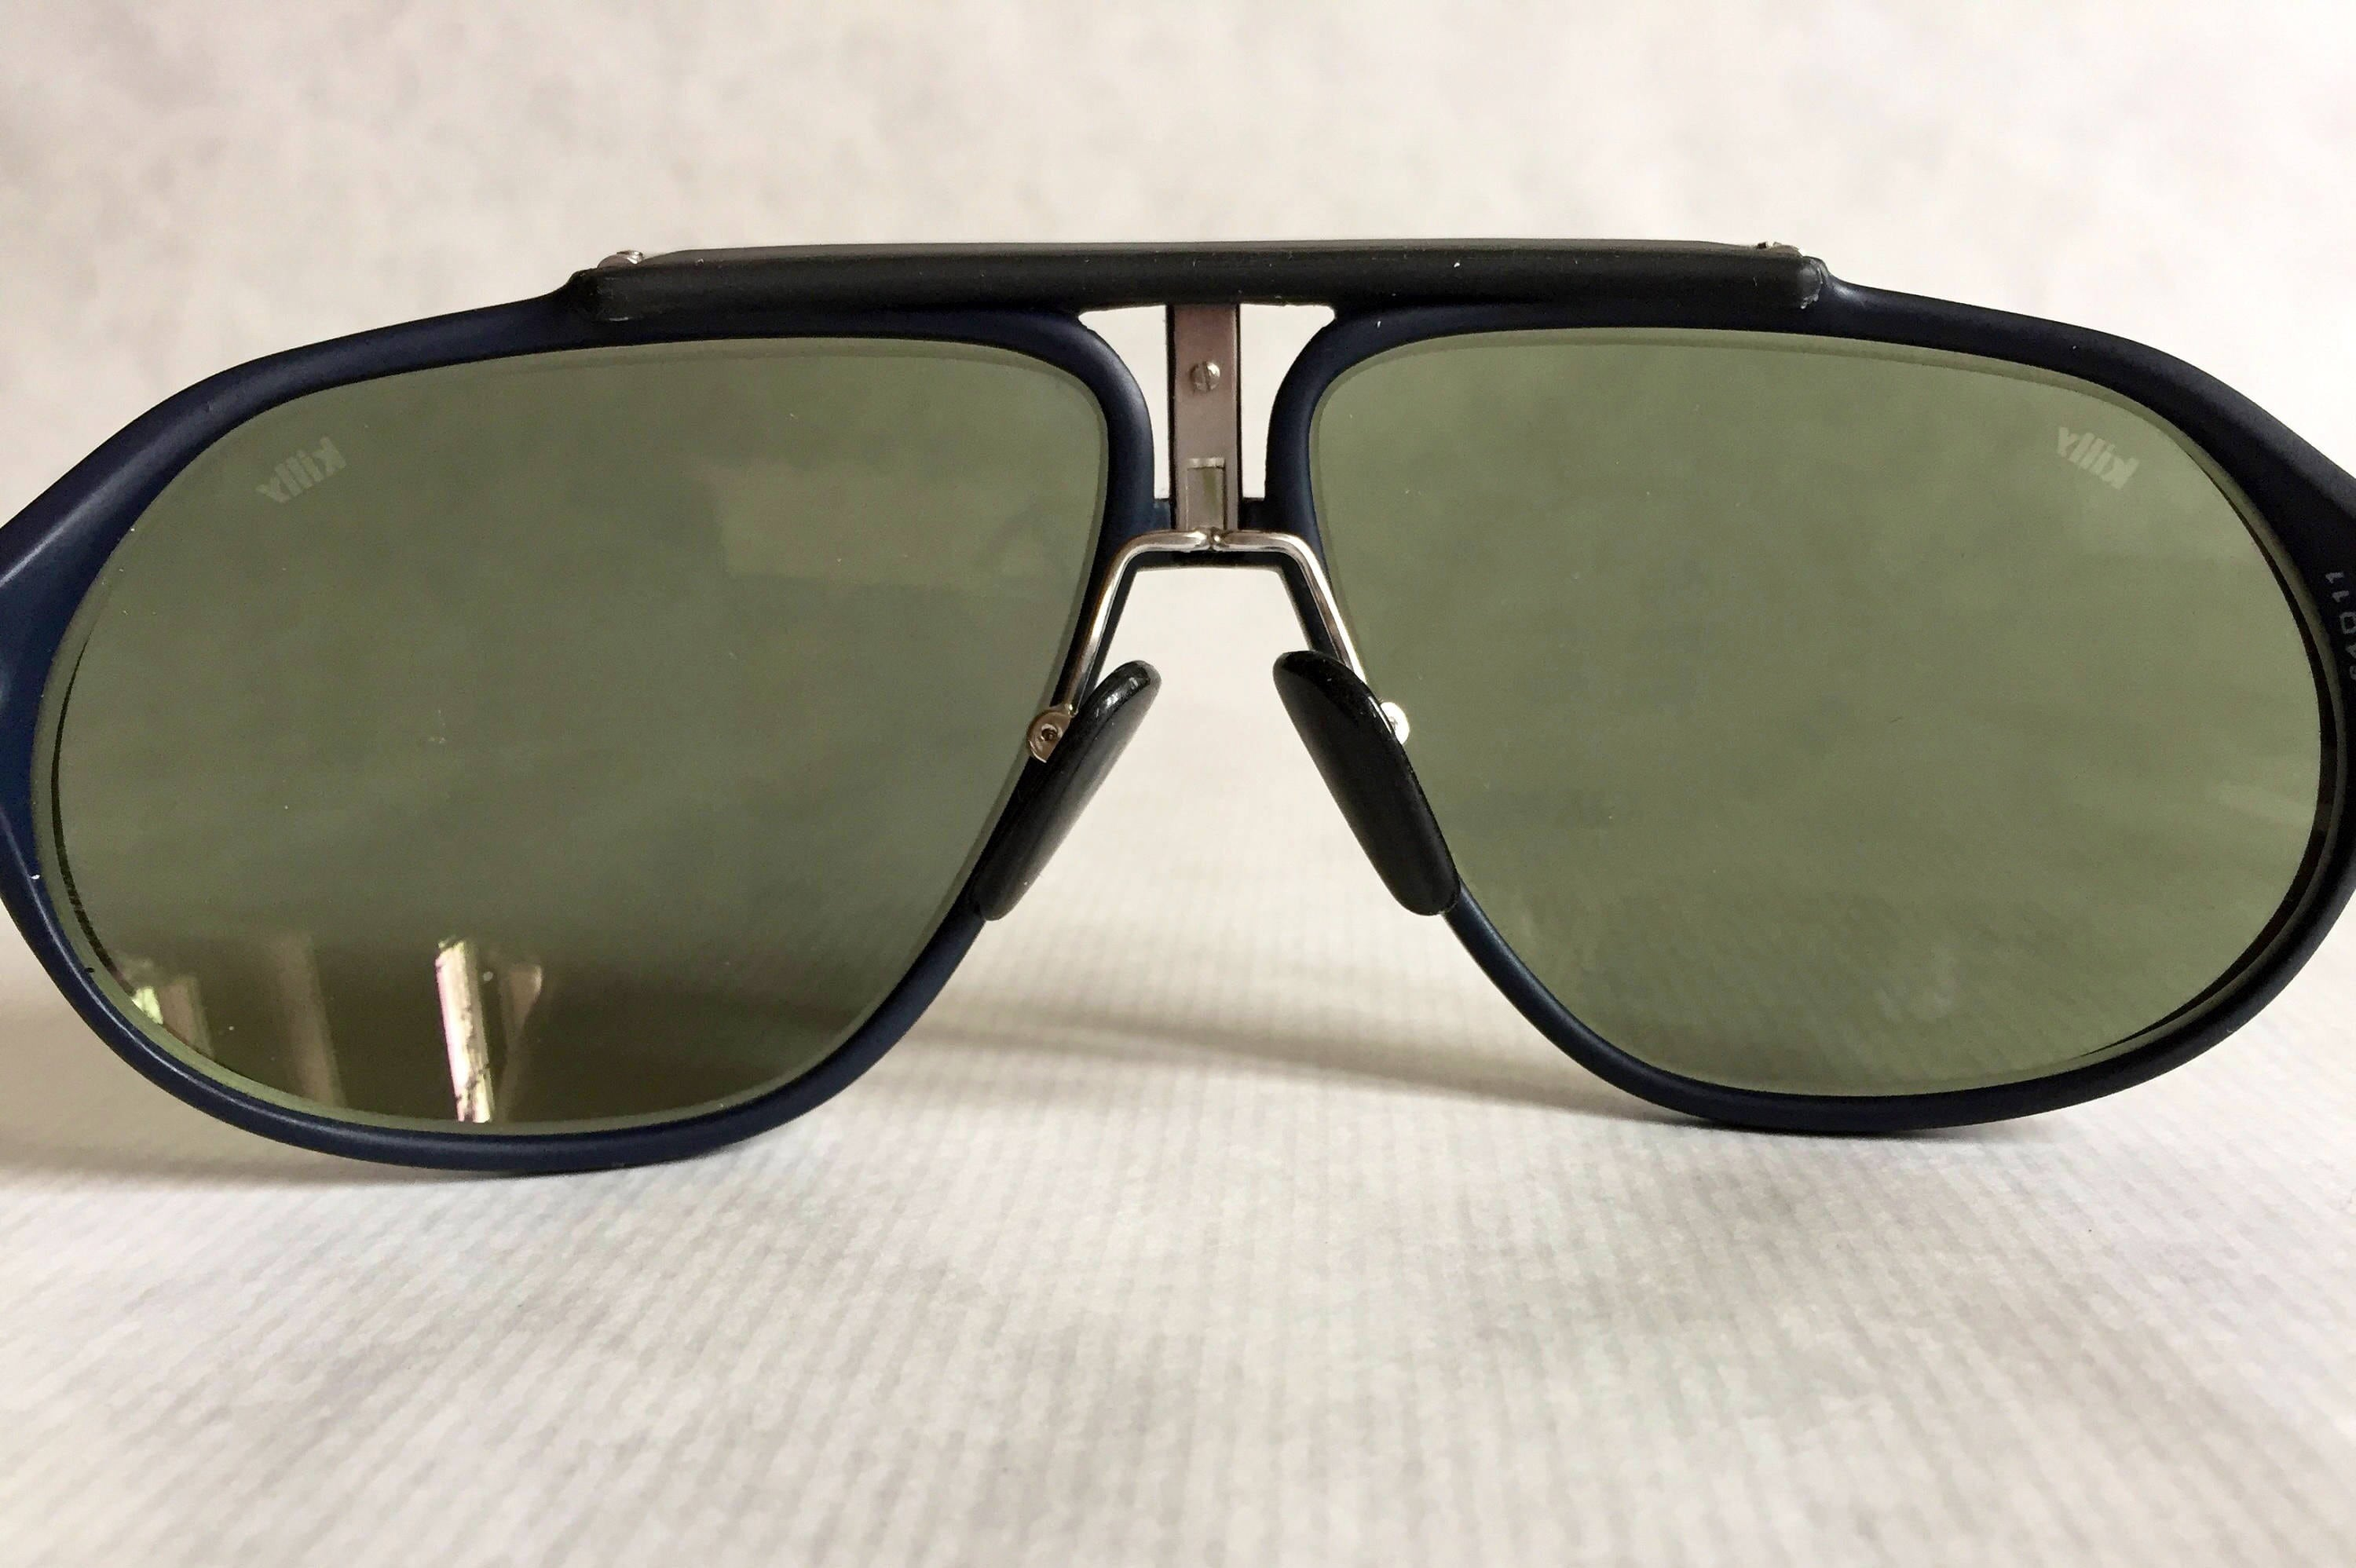 0d90d602060c Killy 469 004 Vintage Sunglasses with Suspended Nosepads - New ...